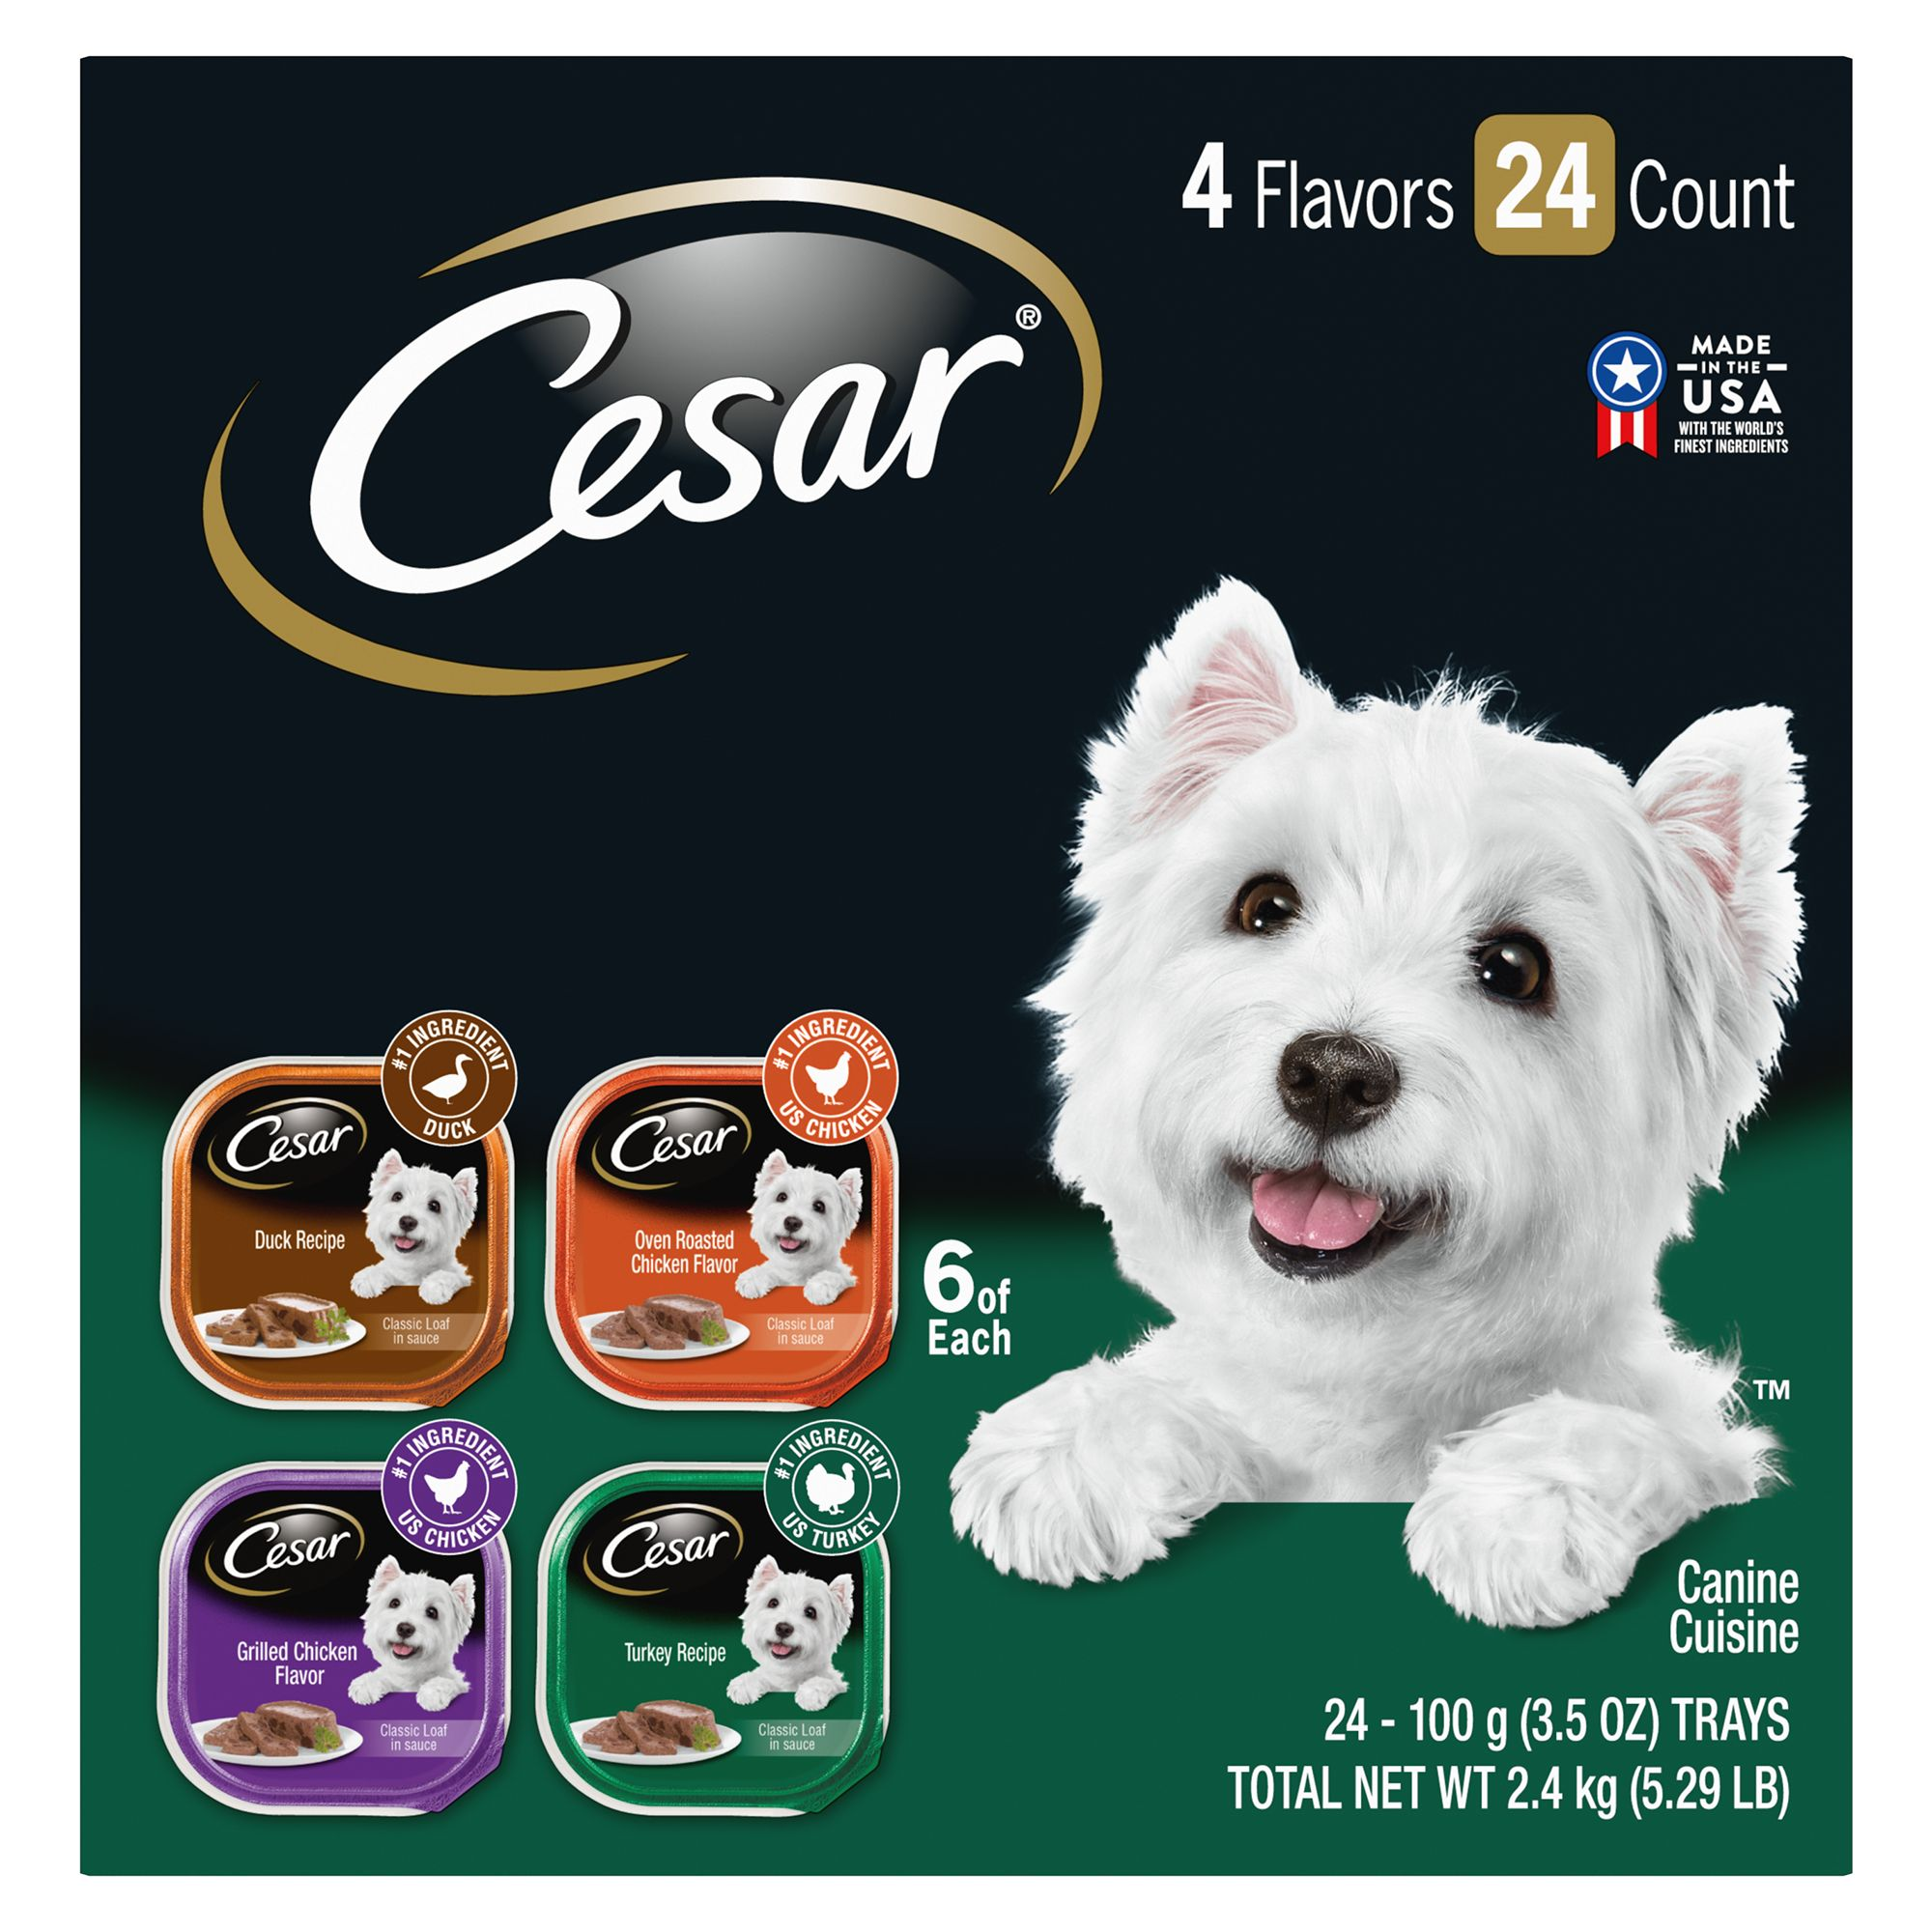 Cesar Canine Cuisines Poultry Variety Pack Dog Food Size 3.5 Oz